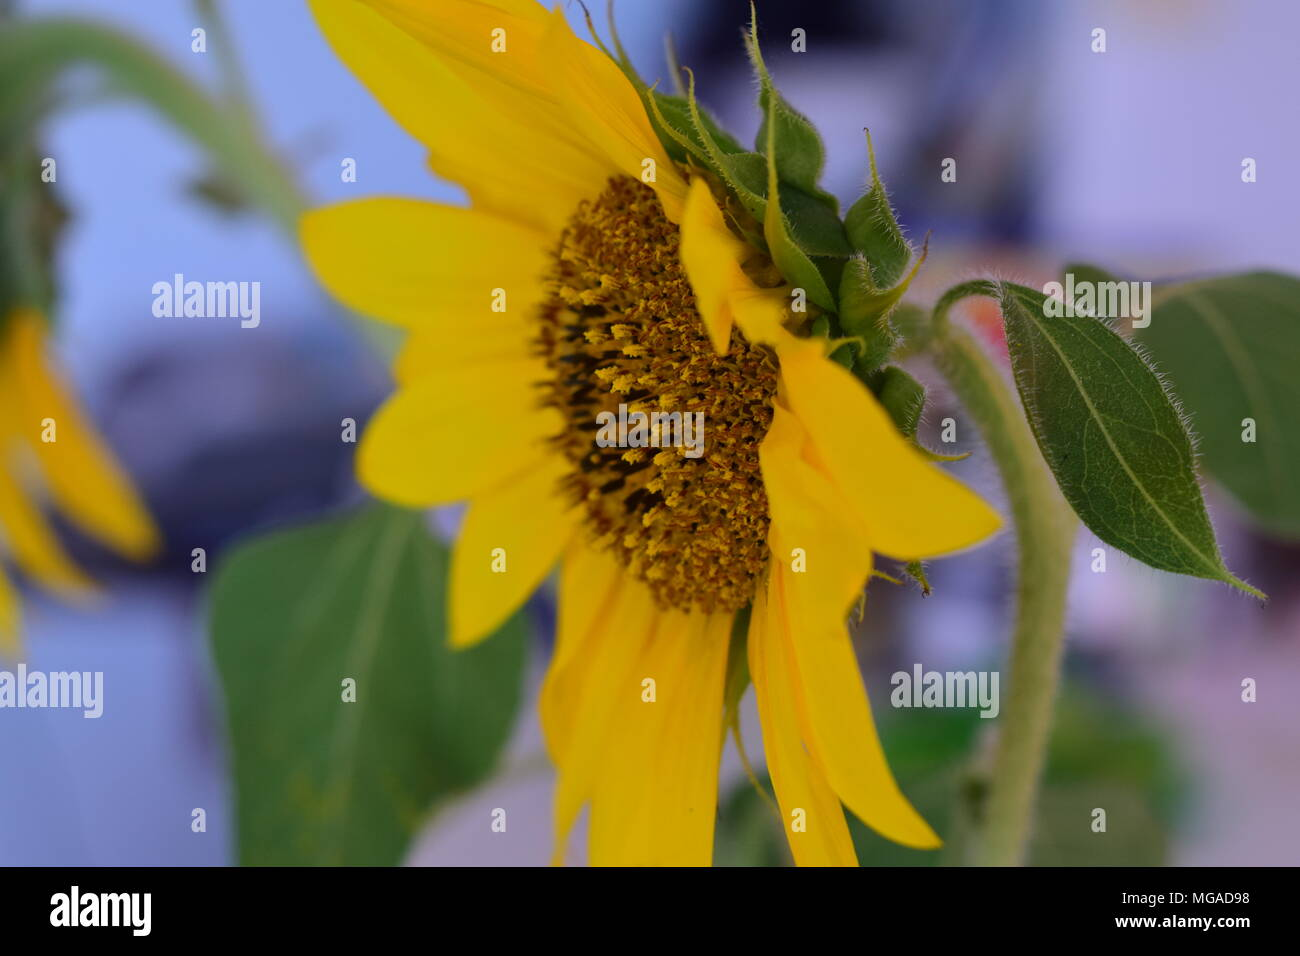 Close up of a sunflower with blurred background, What more is there to say? - Stock Image